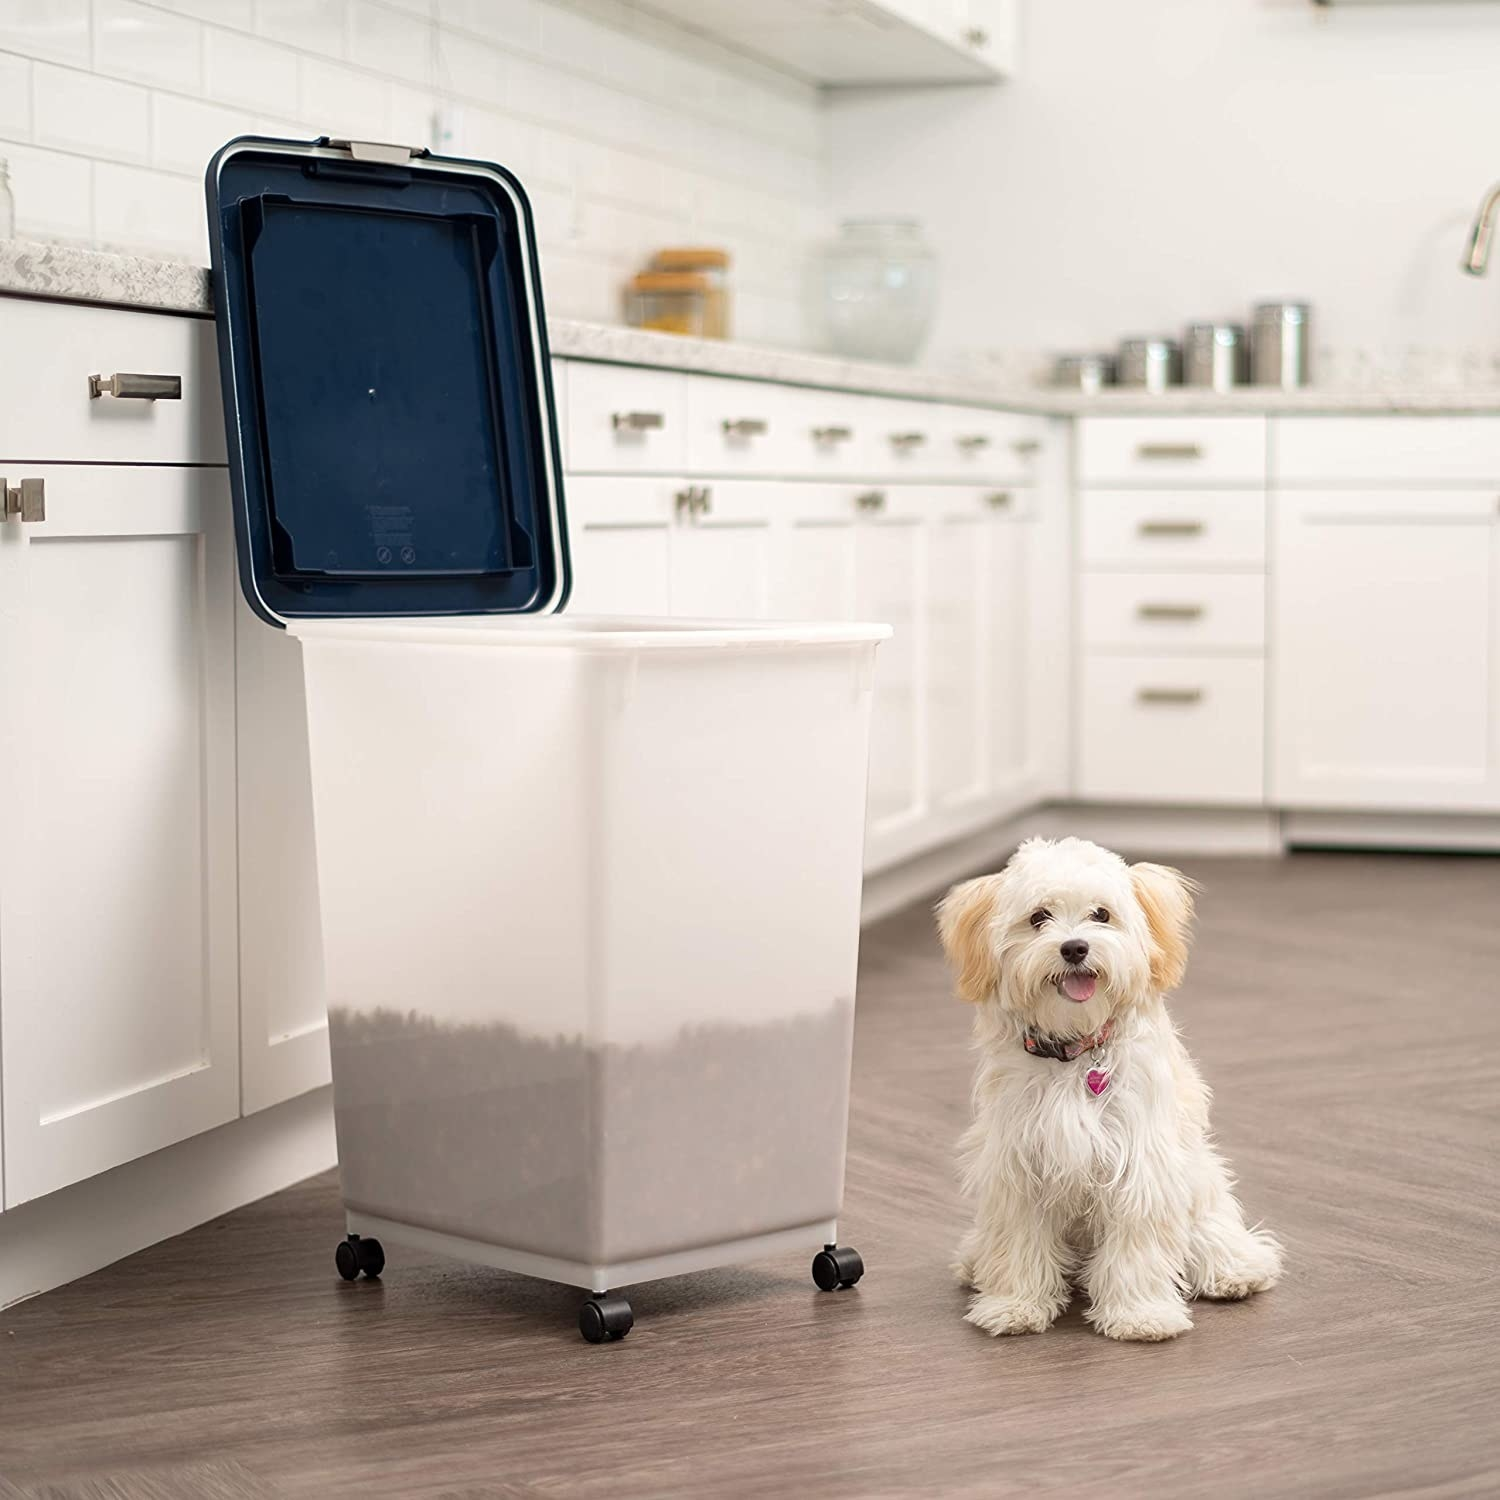 small dog next to large rolling bin with lid